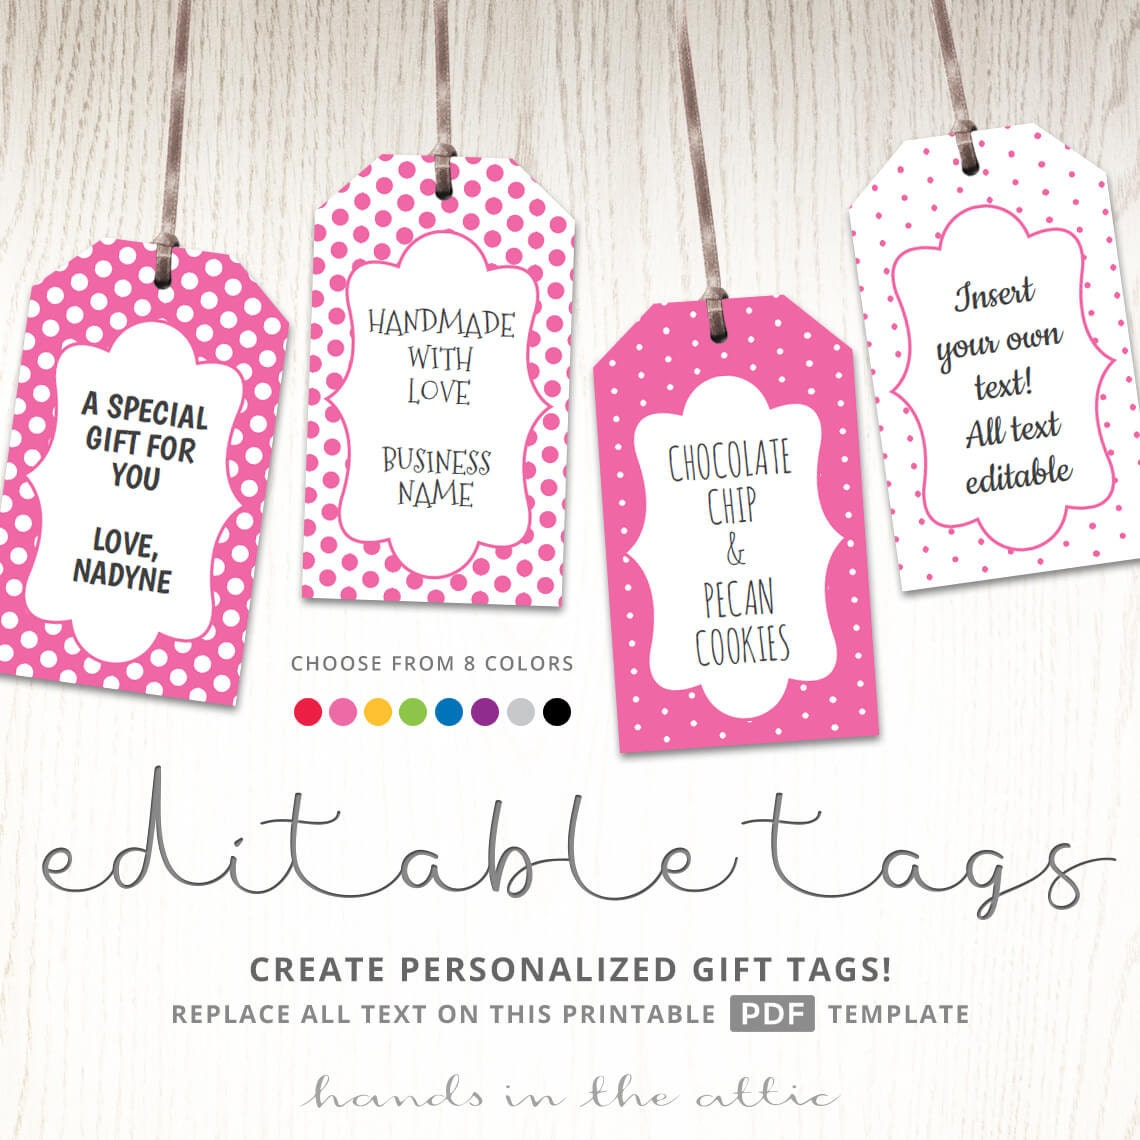 editable gift tags  gift tag template  text editable  polka dots  gift labels  hang tags